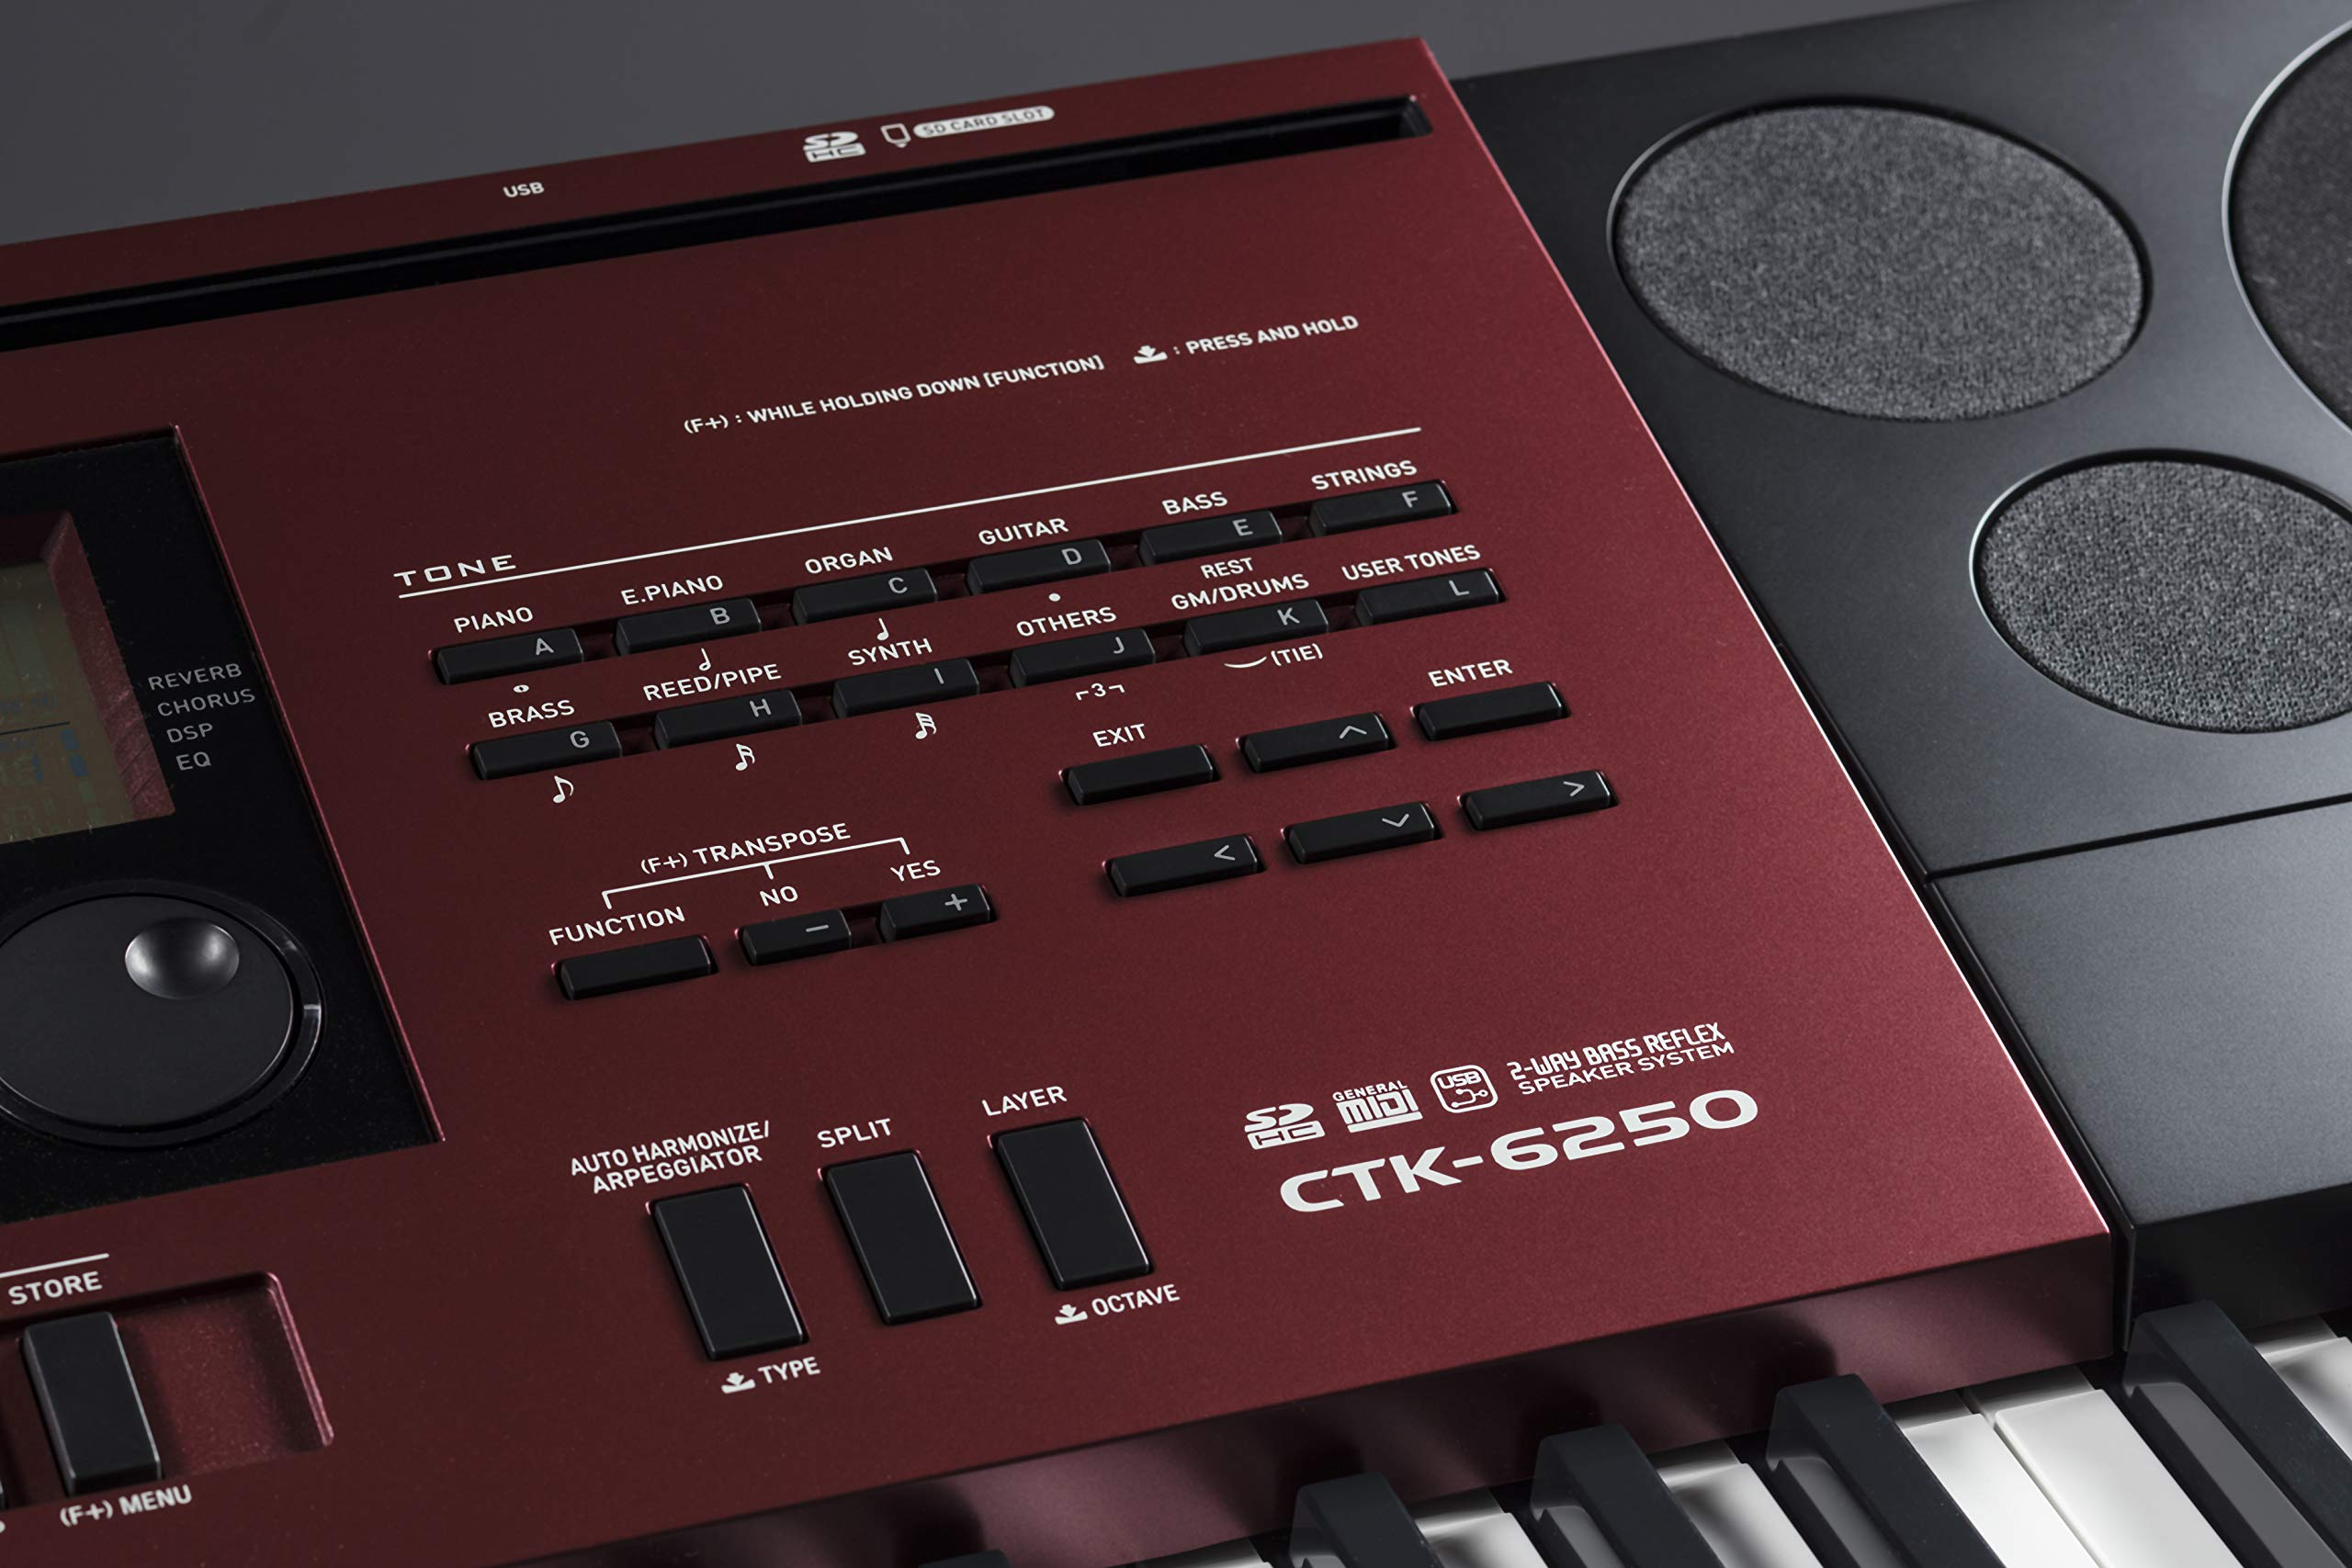 Effector And Sound Creation Tool Of Casio CTK 6250